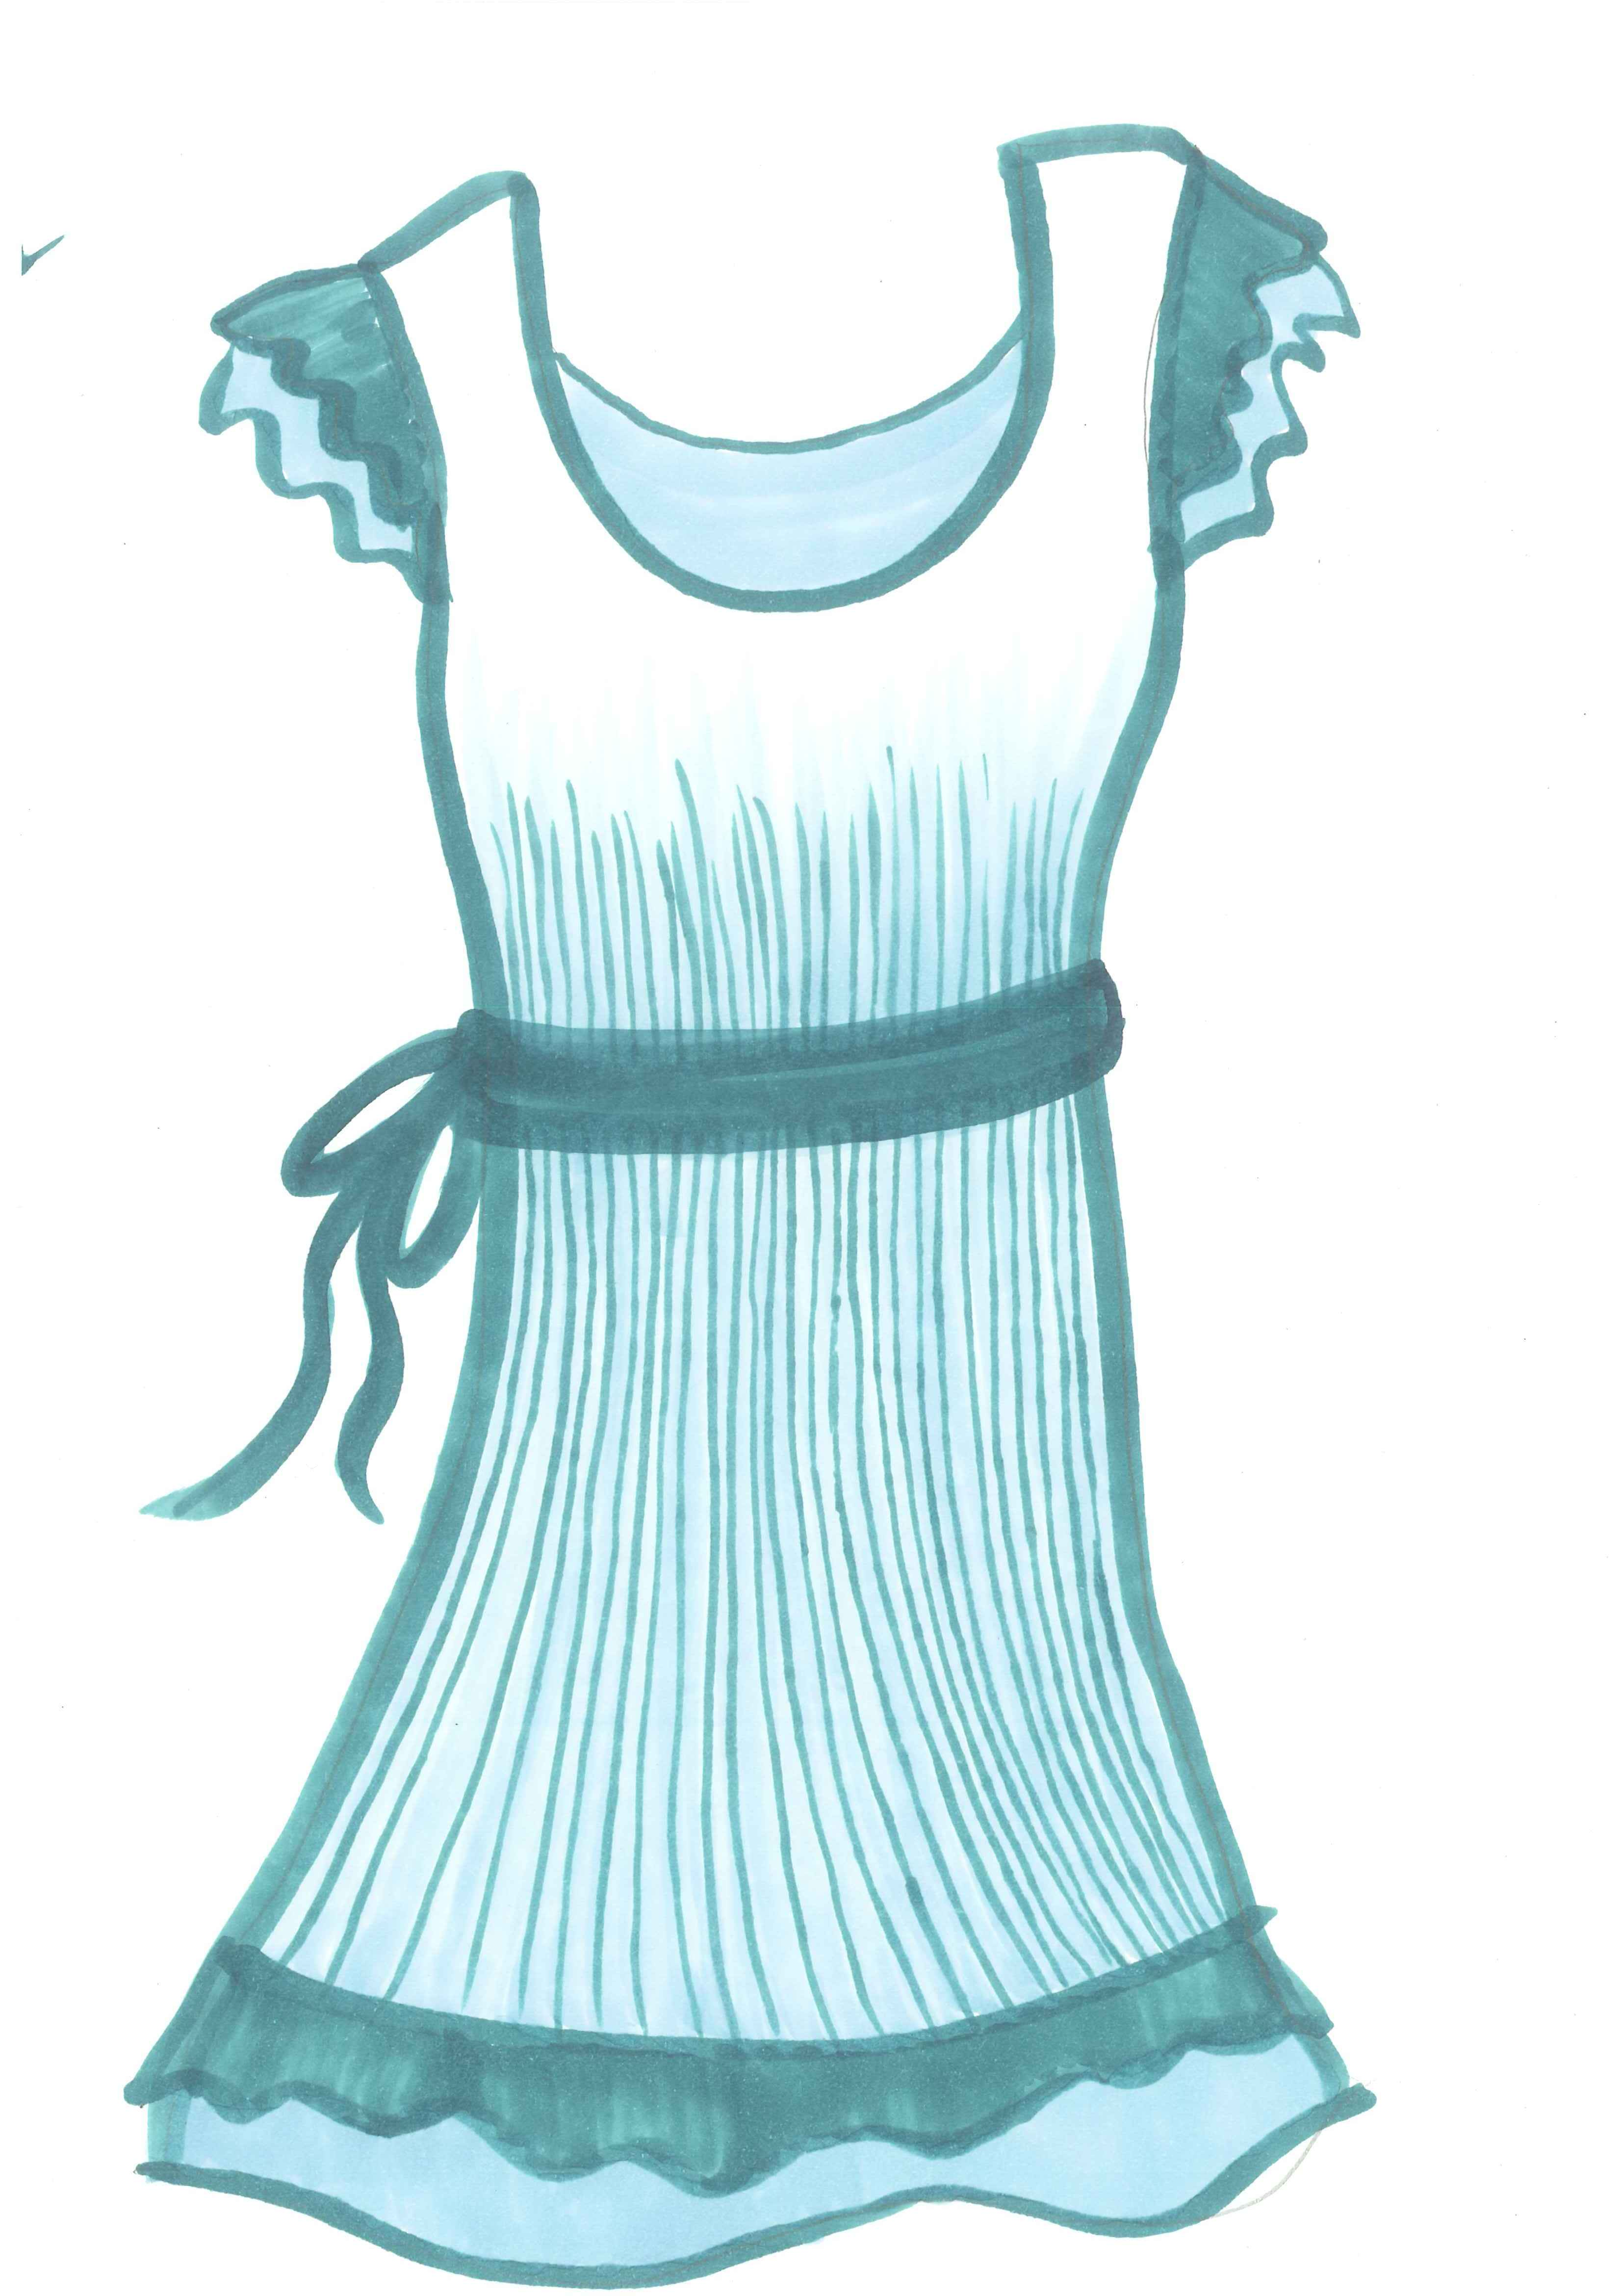 Summerdress clipart vector library download Free Summer Cloth Cliparts, Download Free Clip Art, Free ... vector library download